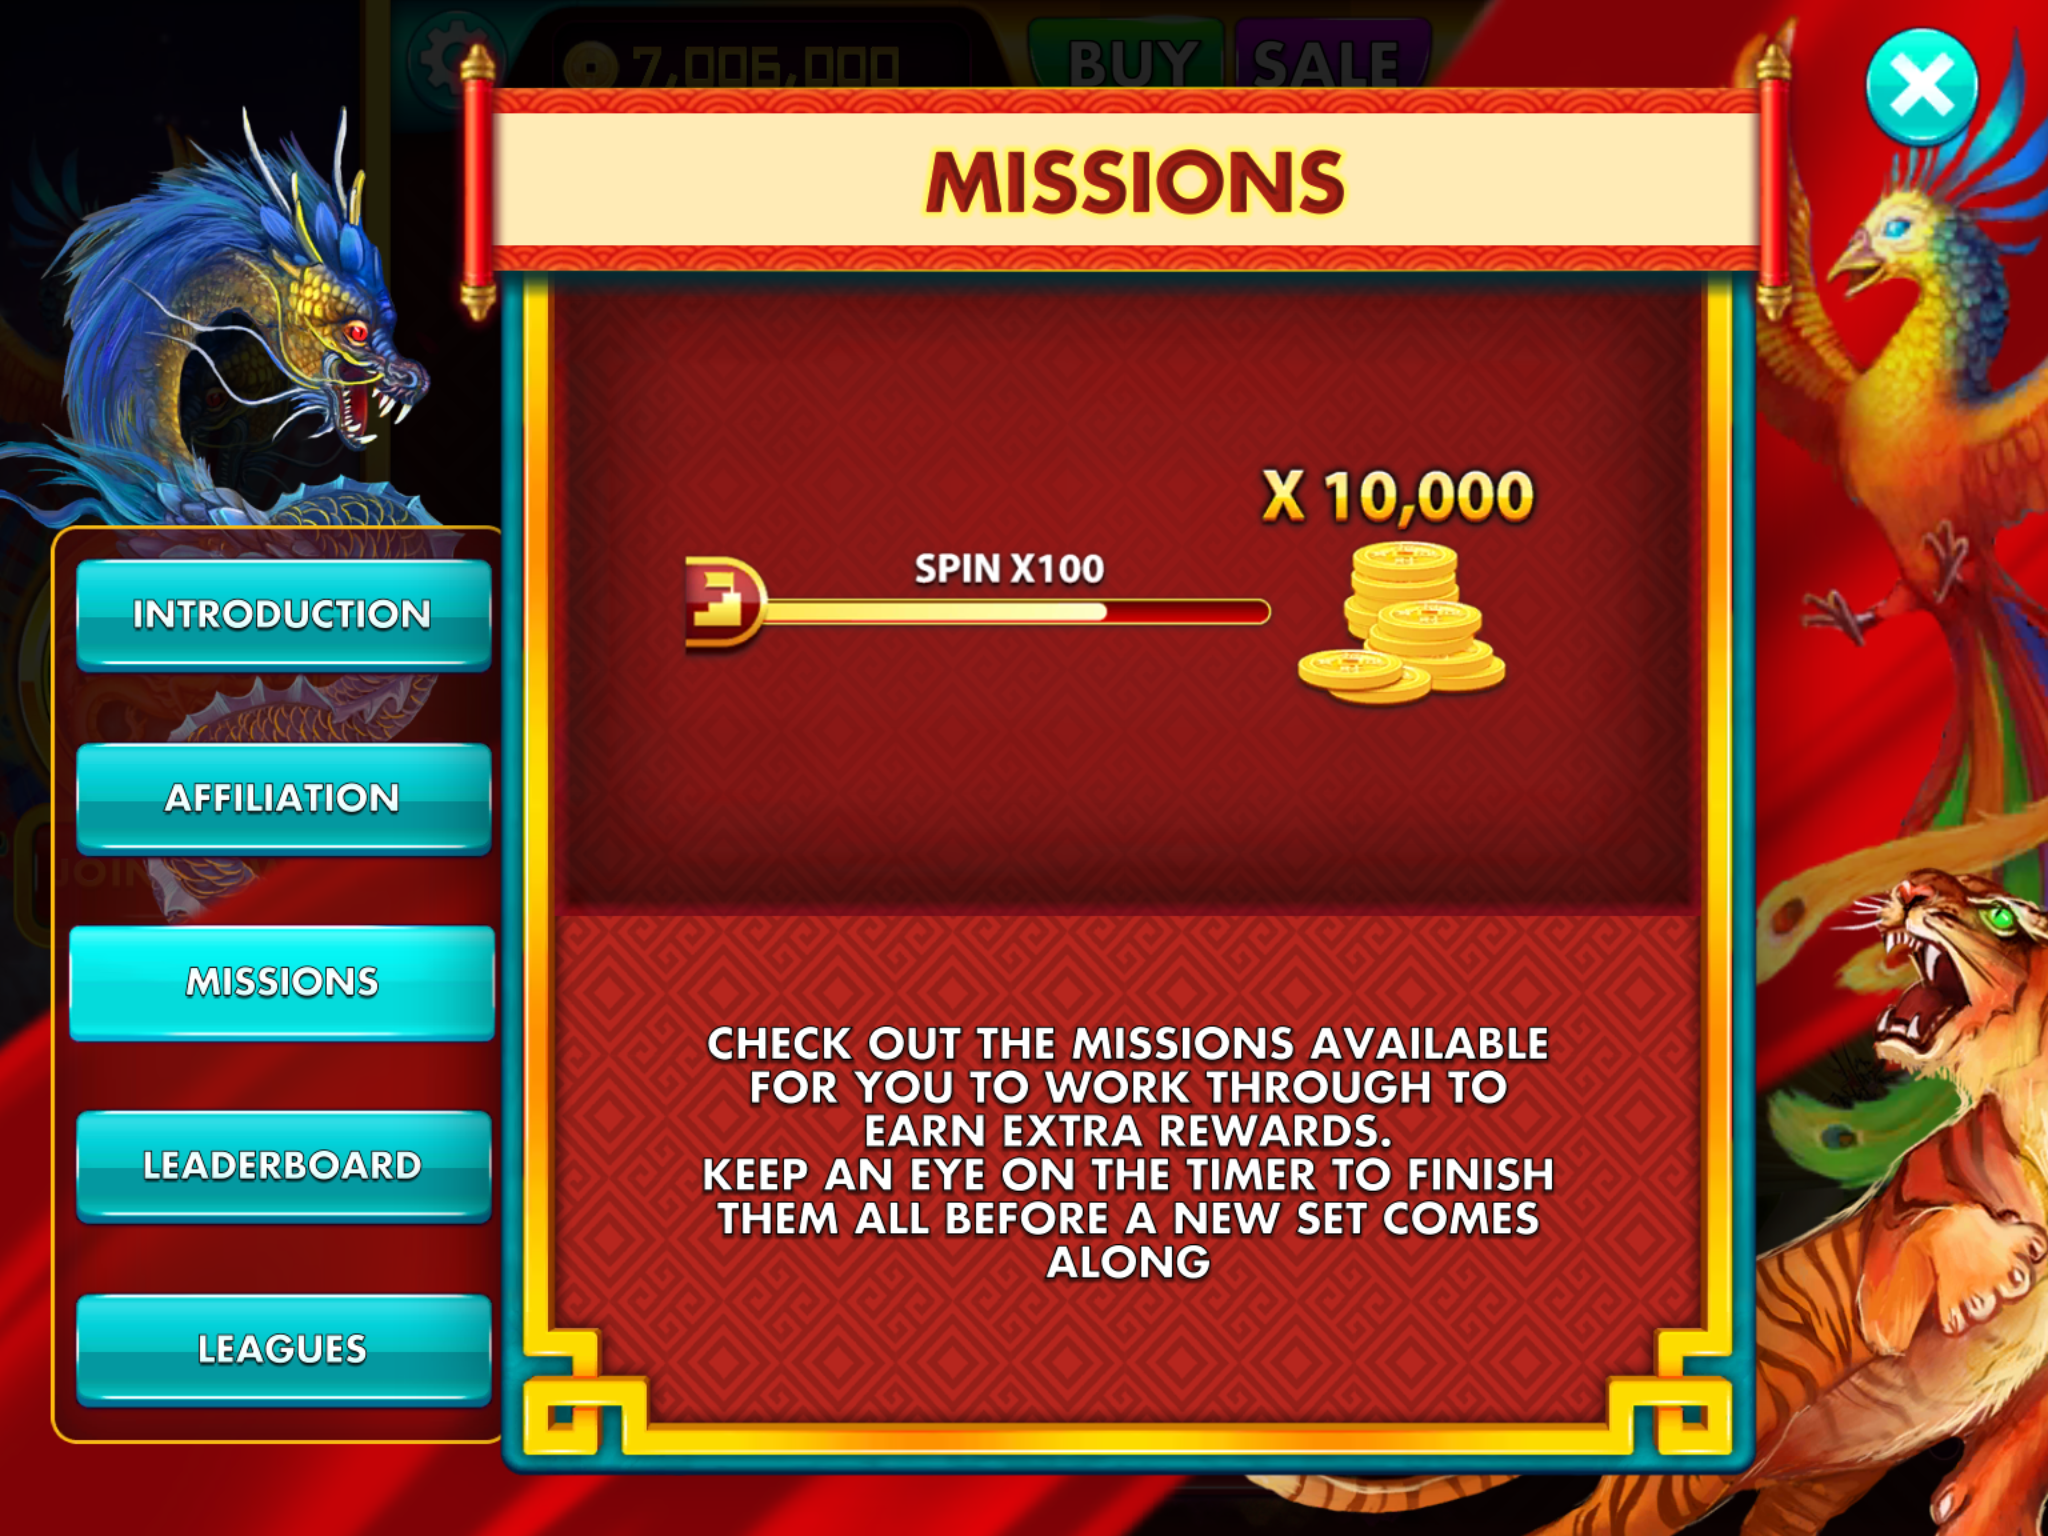 F3G_Clubs_Info_Missions.png